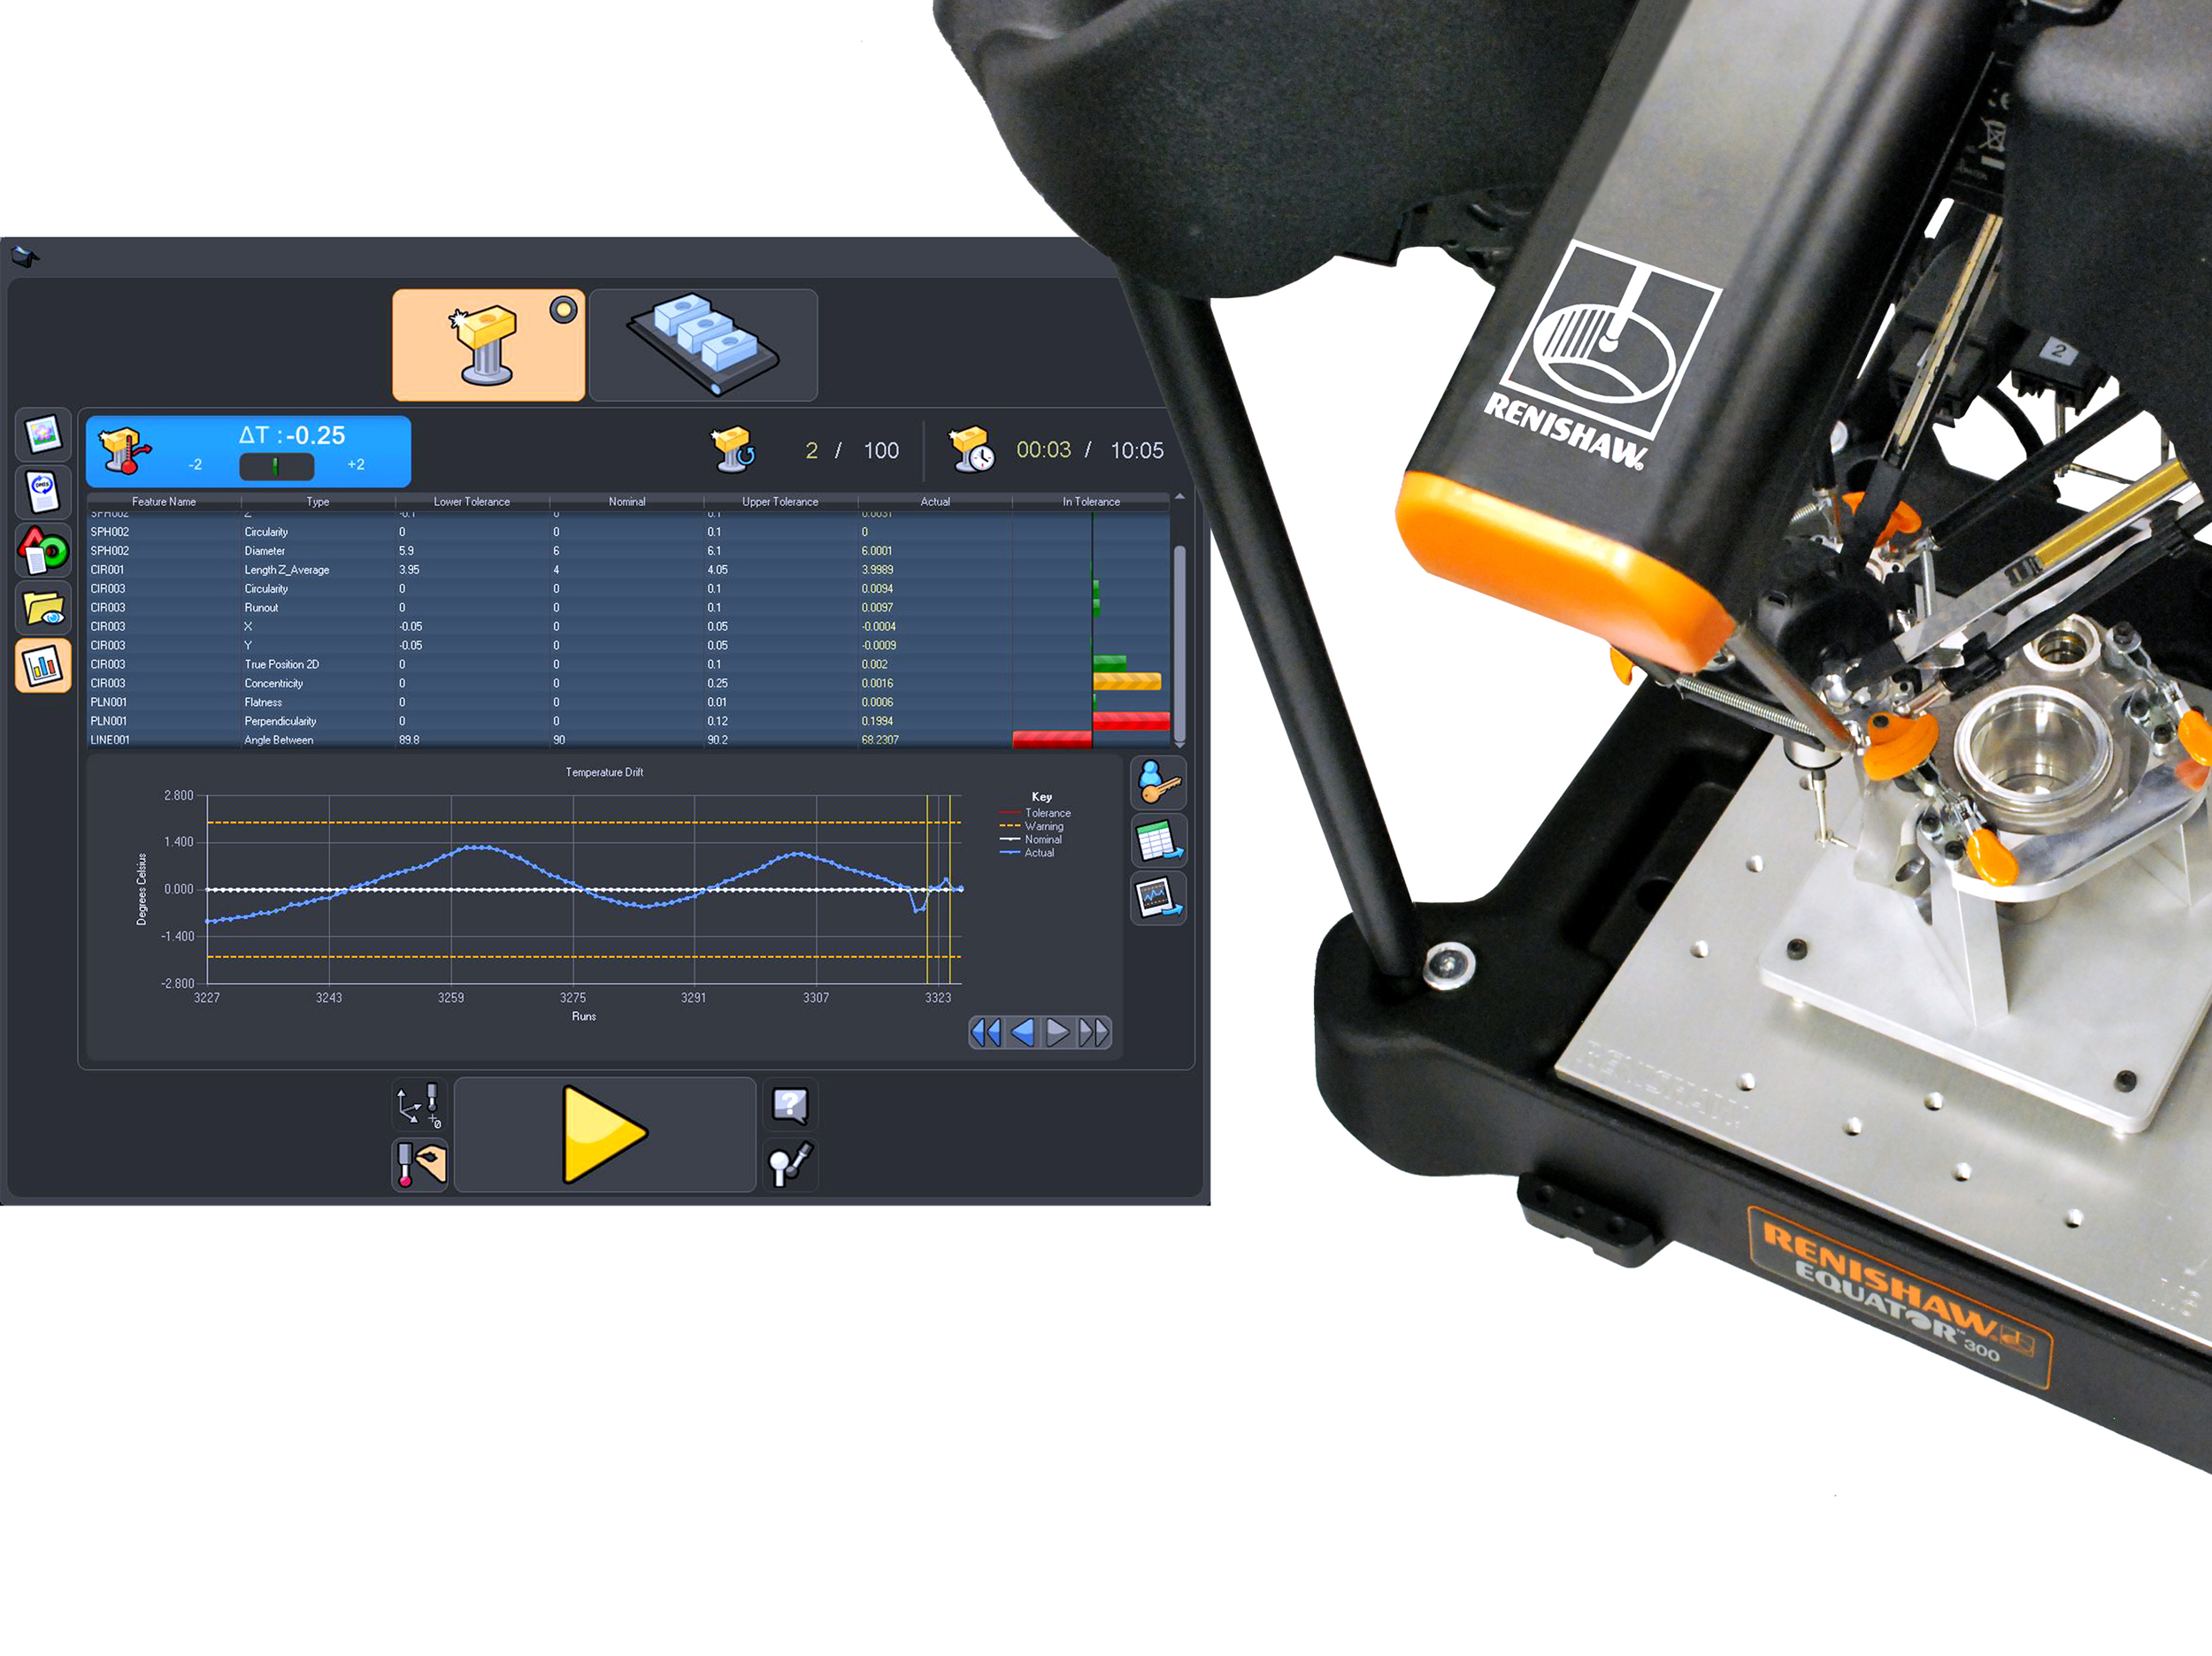 Imts 2014 Quality Assurance Laser Cutting Machine For Printed Circuit Boards With Inline Measuring Booth E 5510 The New Equator Comparative Gauging System Process Monitoring Software From Renishaw Displays Measurement Results Of Inspected Features